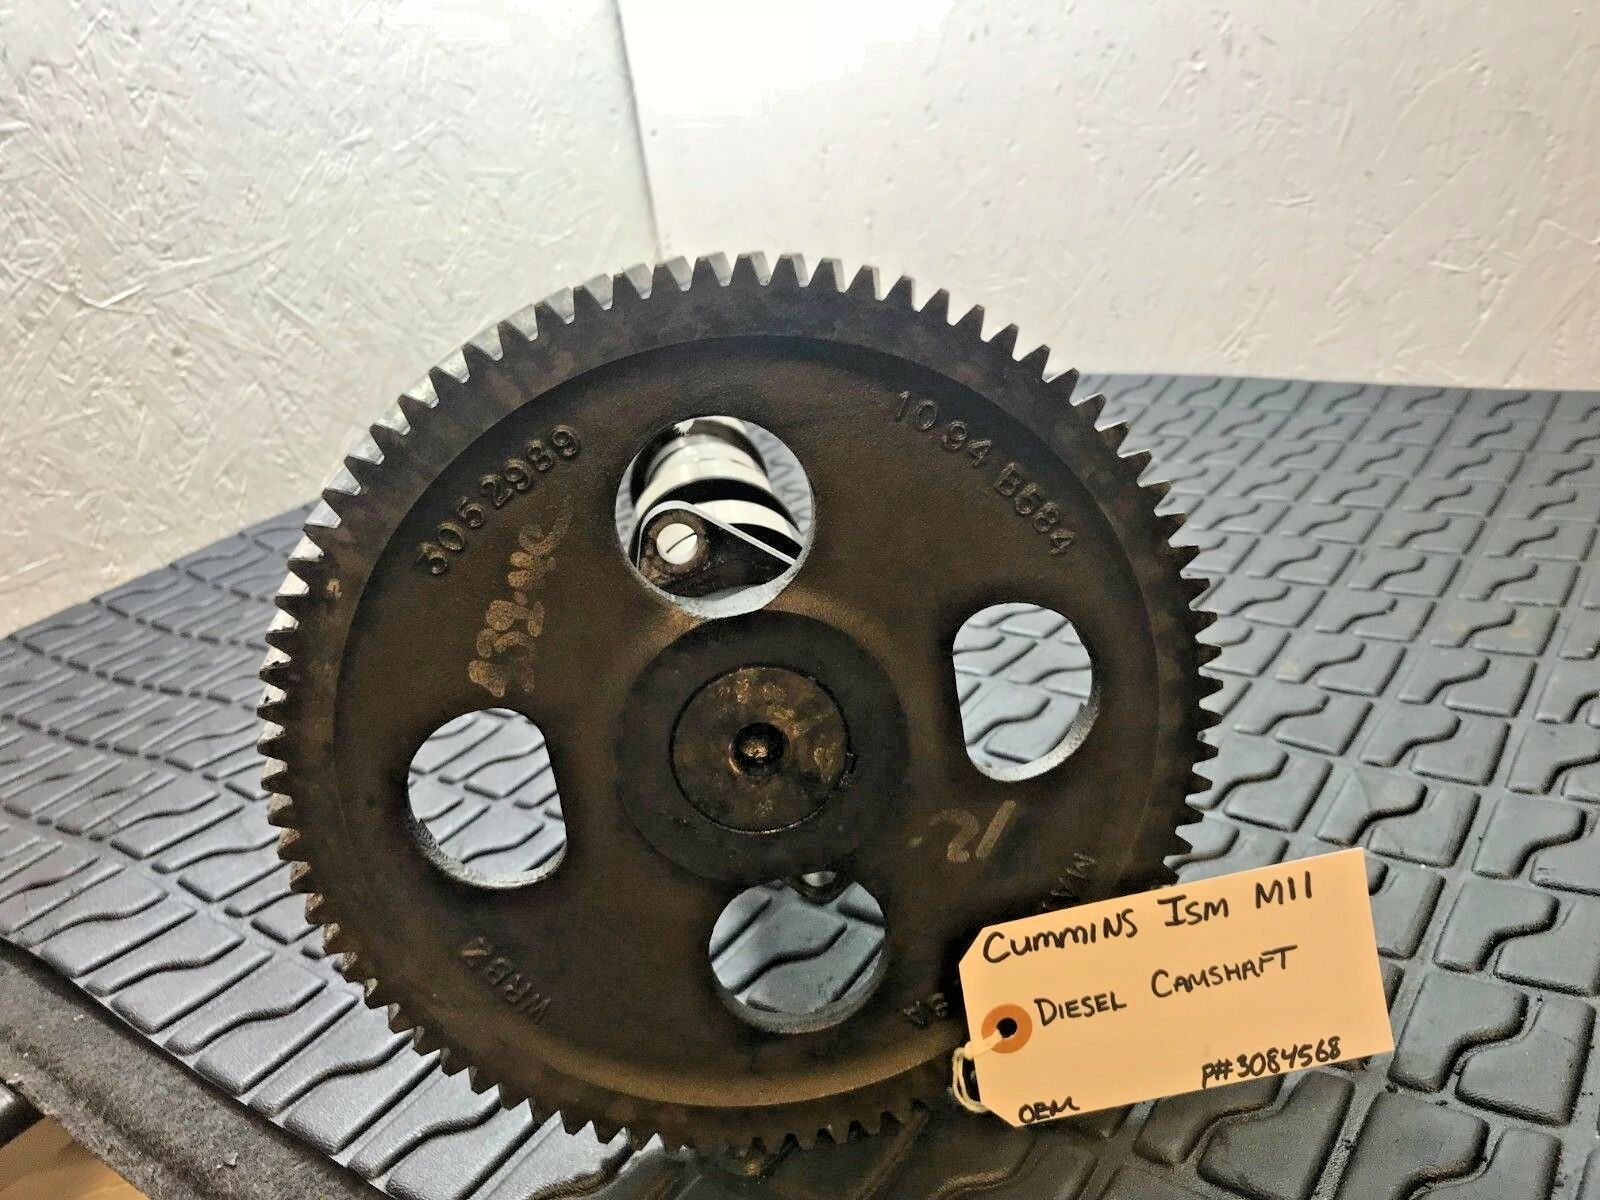 Cummins M11 ISM11 CAMSHAFT 3084568 with Camshaft Gear 3052989 OEM image 2